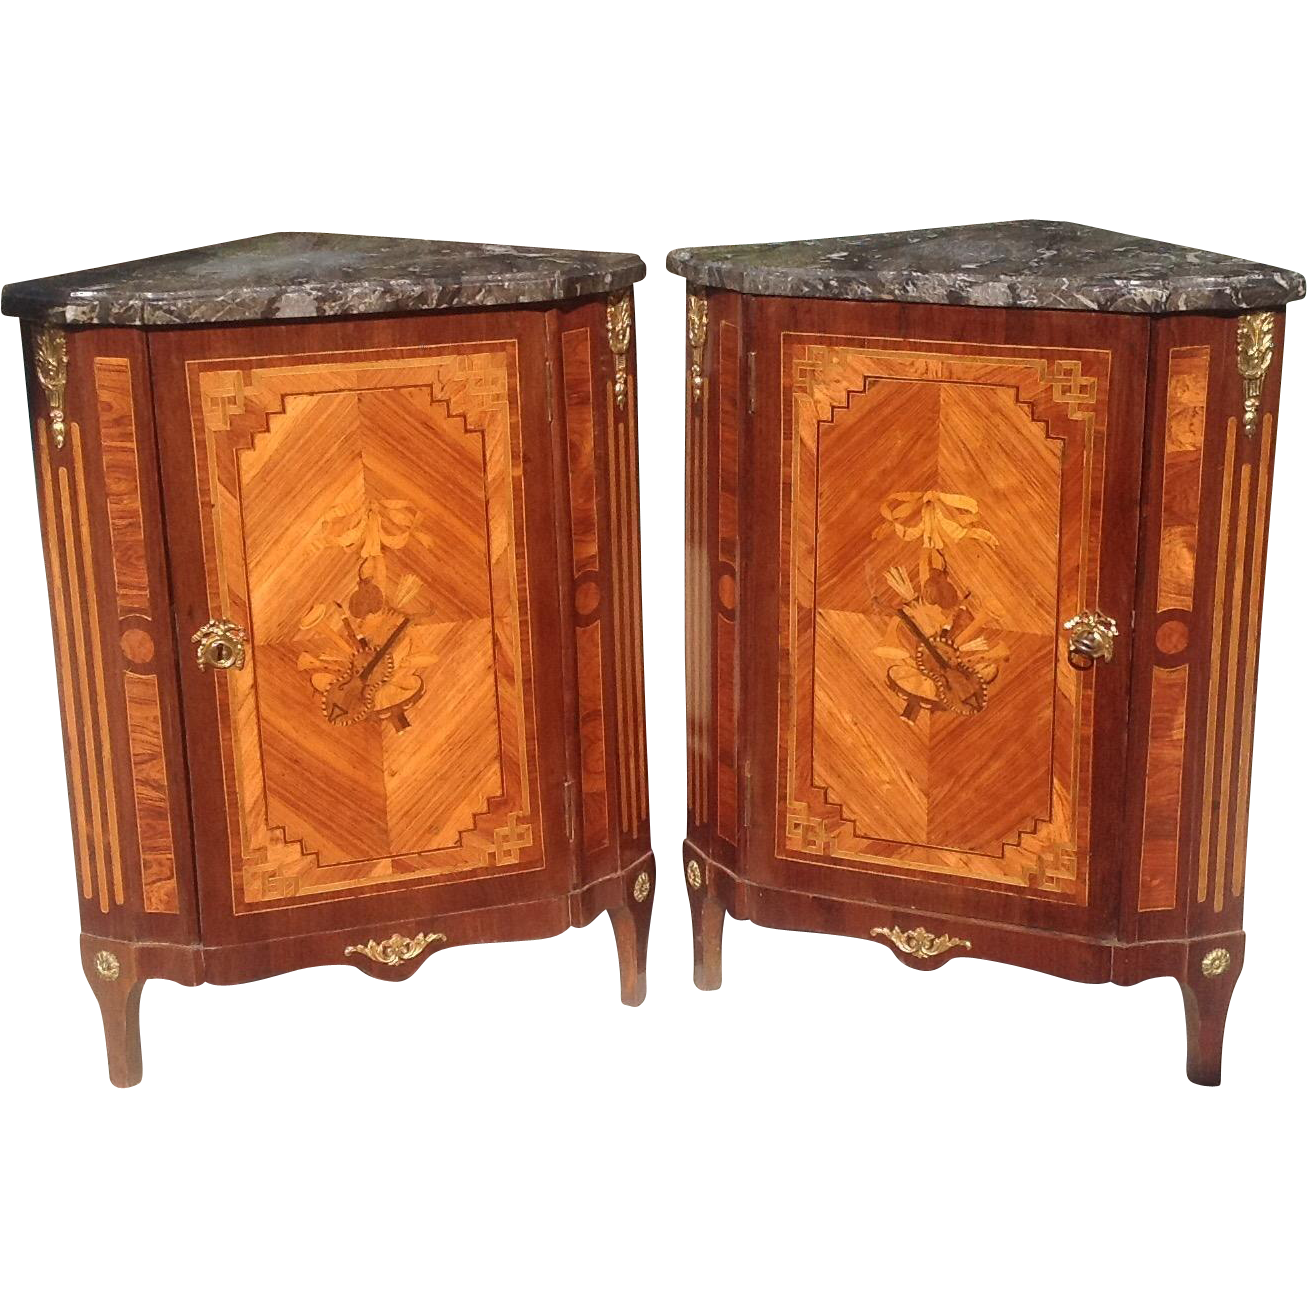 Pair of 18th c. French Louis XVI Cabinets